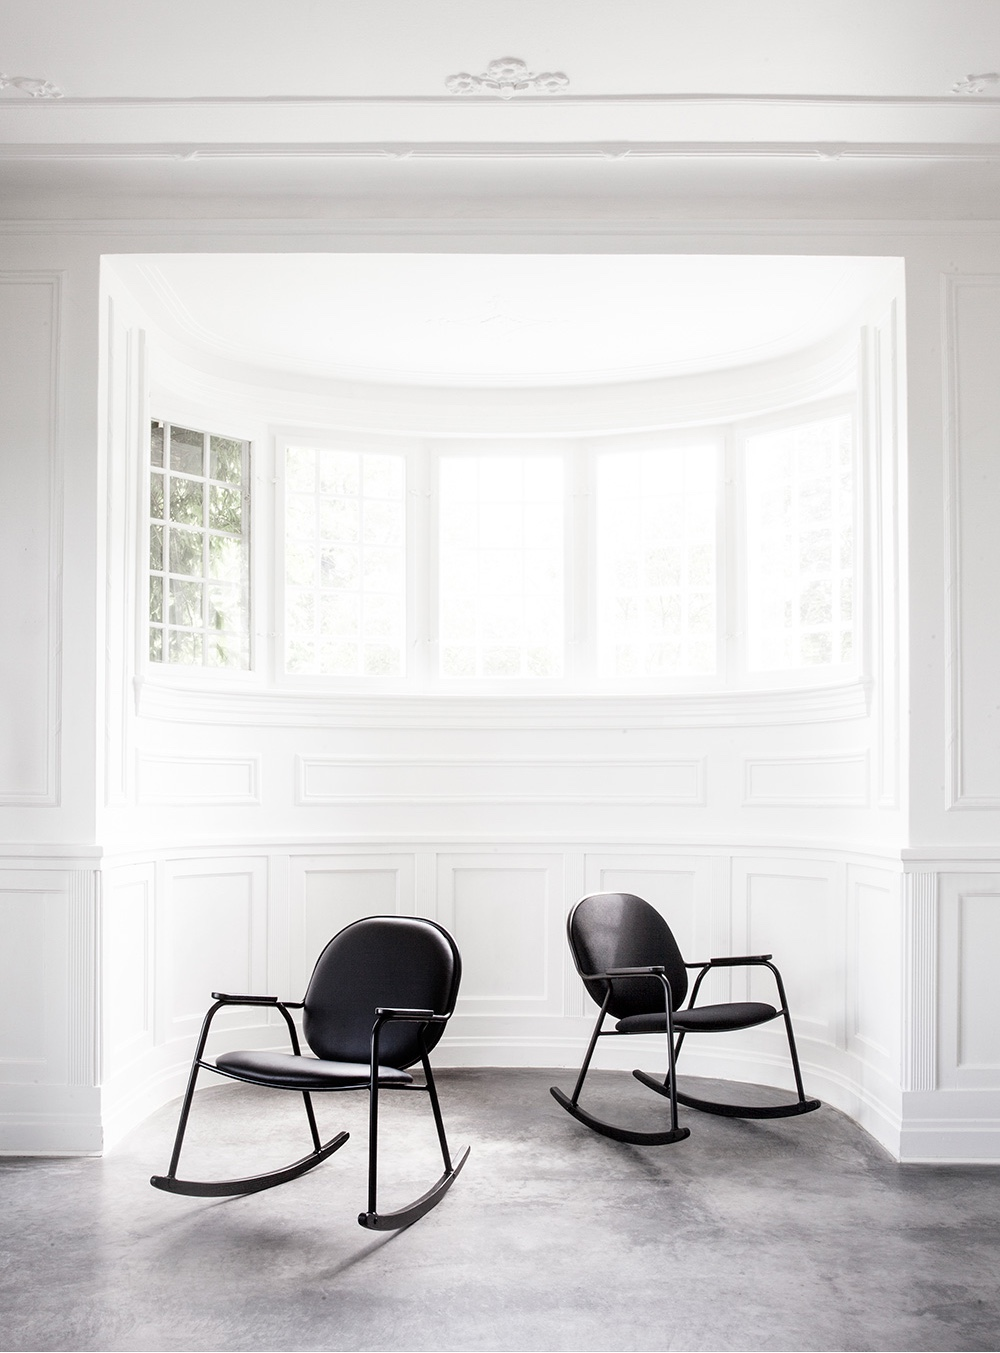 A collaboration between Frederik Alexander Werner and Sørensen Leather led to the launch of Werner's Rocking Chair for Danish brand Menu.